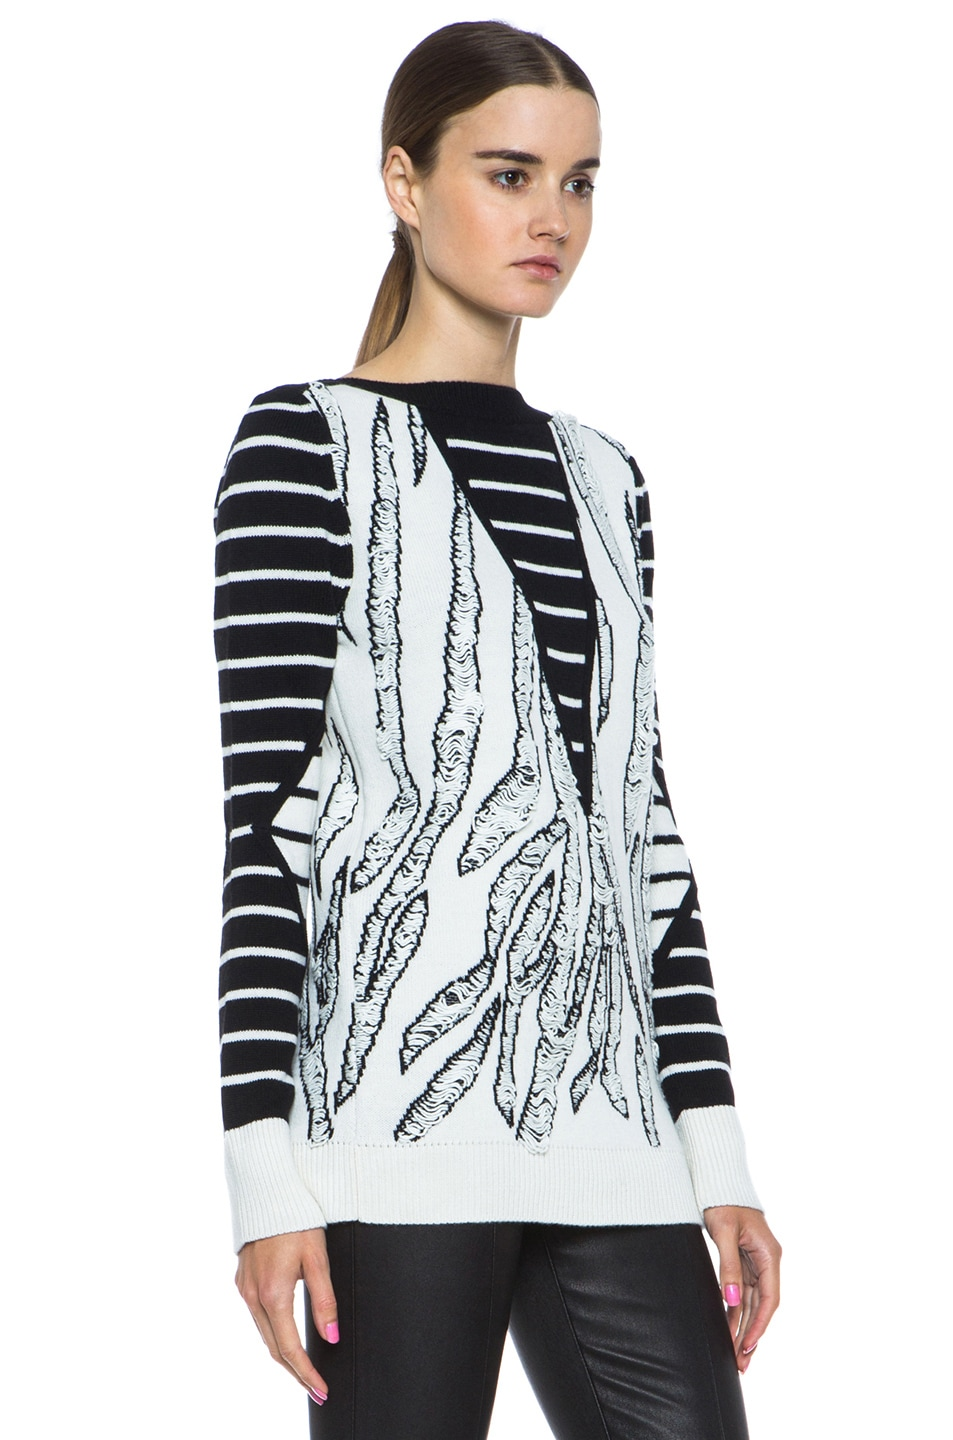 Image 3 of McQ Alexander McQueen Tiger Jacquard Float Stitch Sweater in Cream & Black